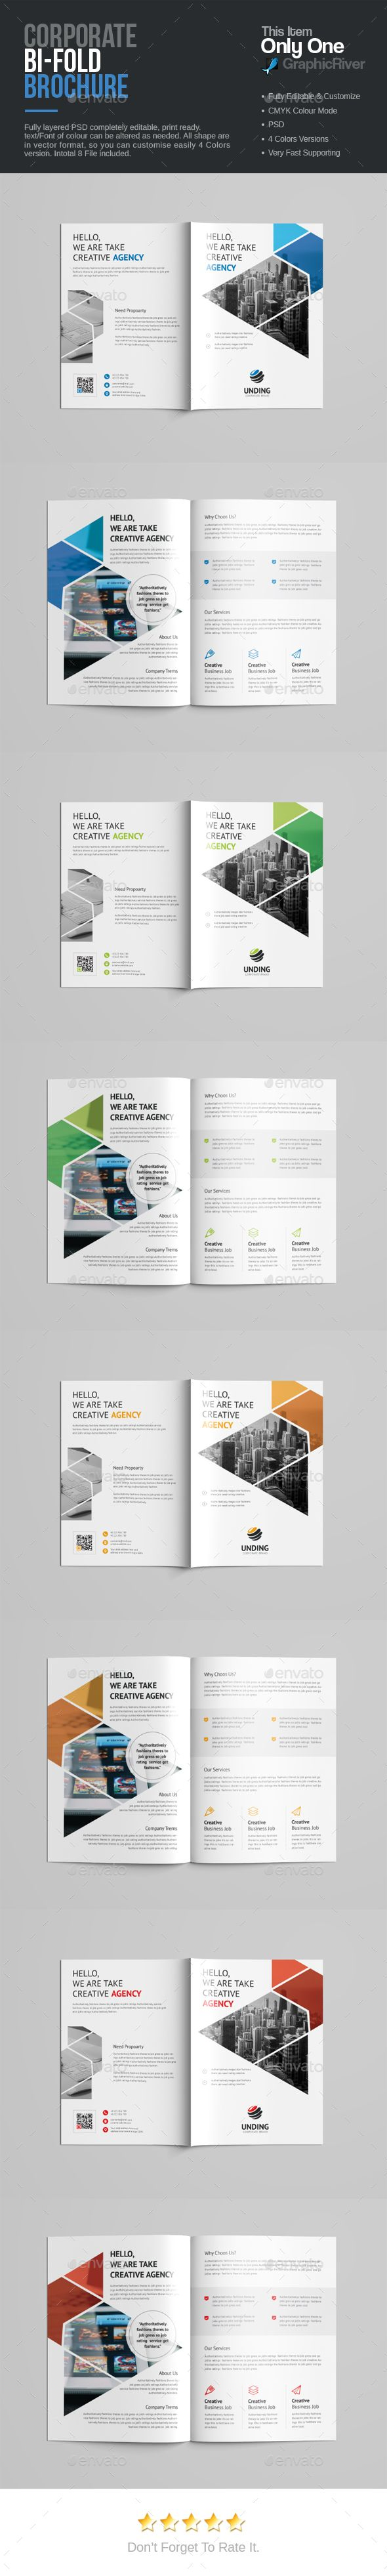 Wonderful 1 Page Resume Format Free Download Thin 100 Free Resume Builder And Download Regular 100 Free Resume Builder Online 1099 Contract Template Young 15 Year Old Resume Yellow2 Circle Template 145 Best Images About Brochure Design On Pinterest | Marketing ..